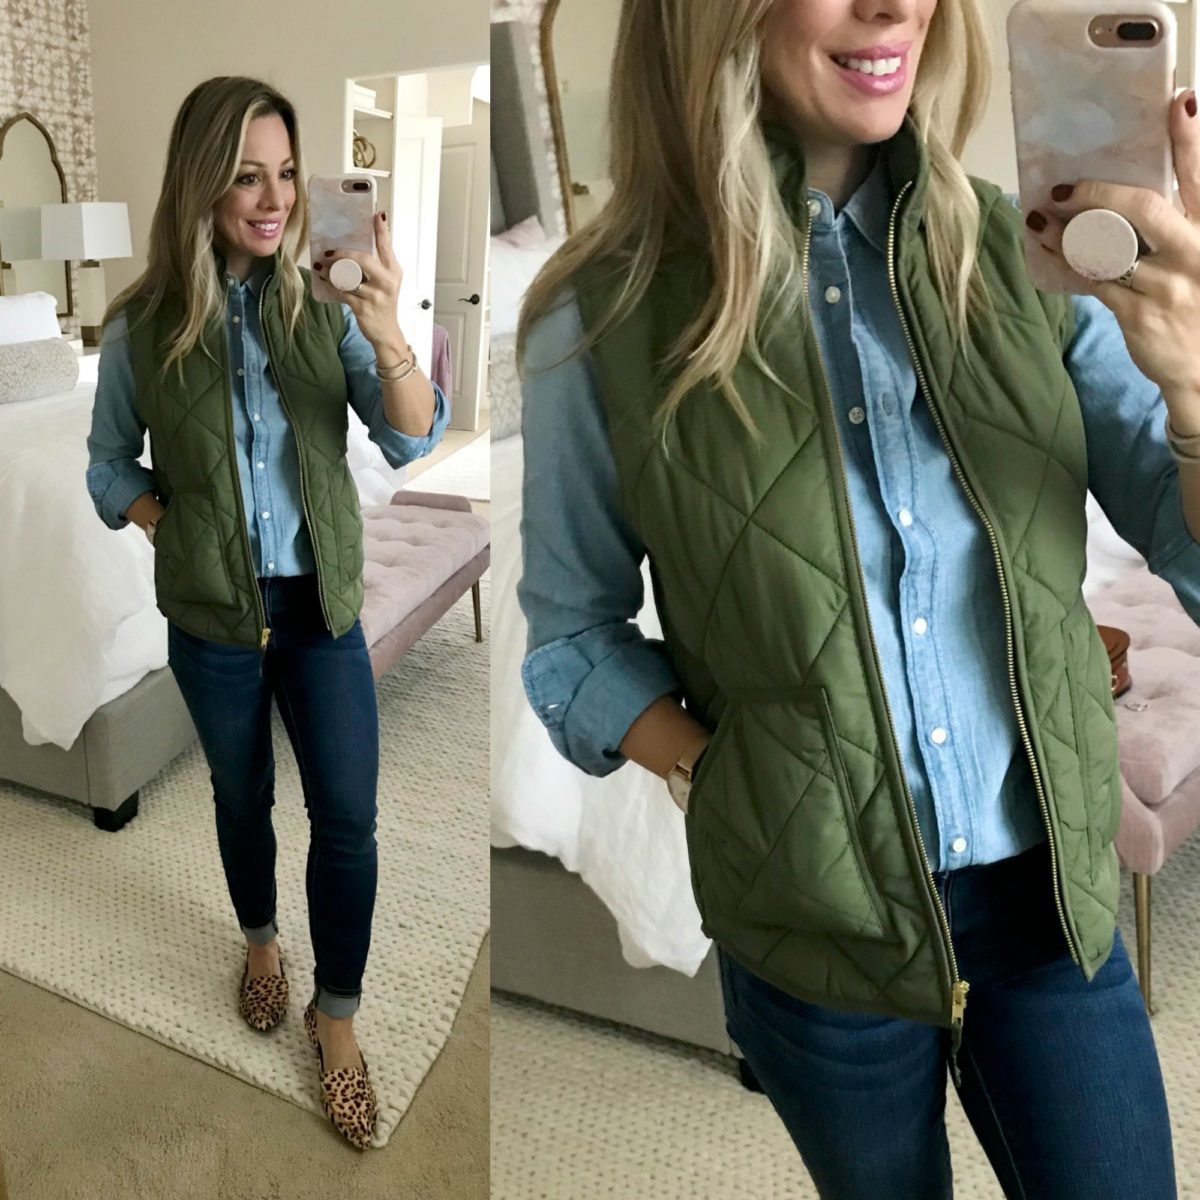 Amazon Fashion Haul J Crew puffer vest